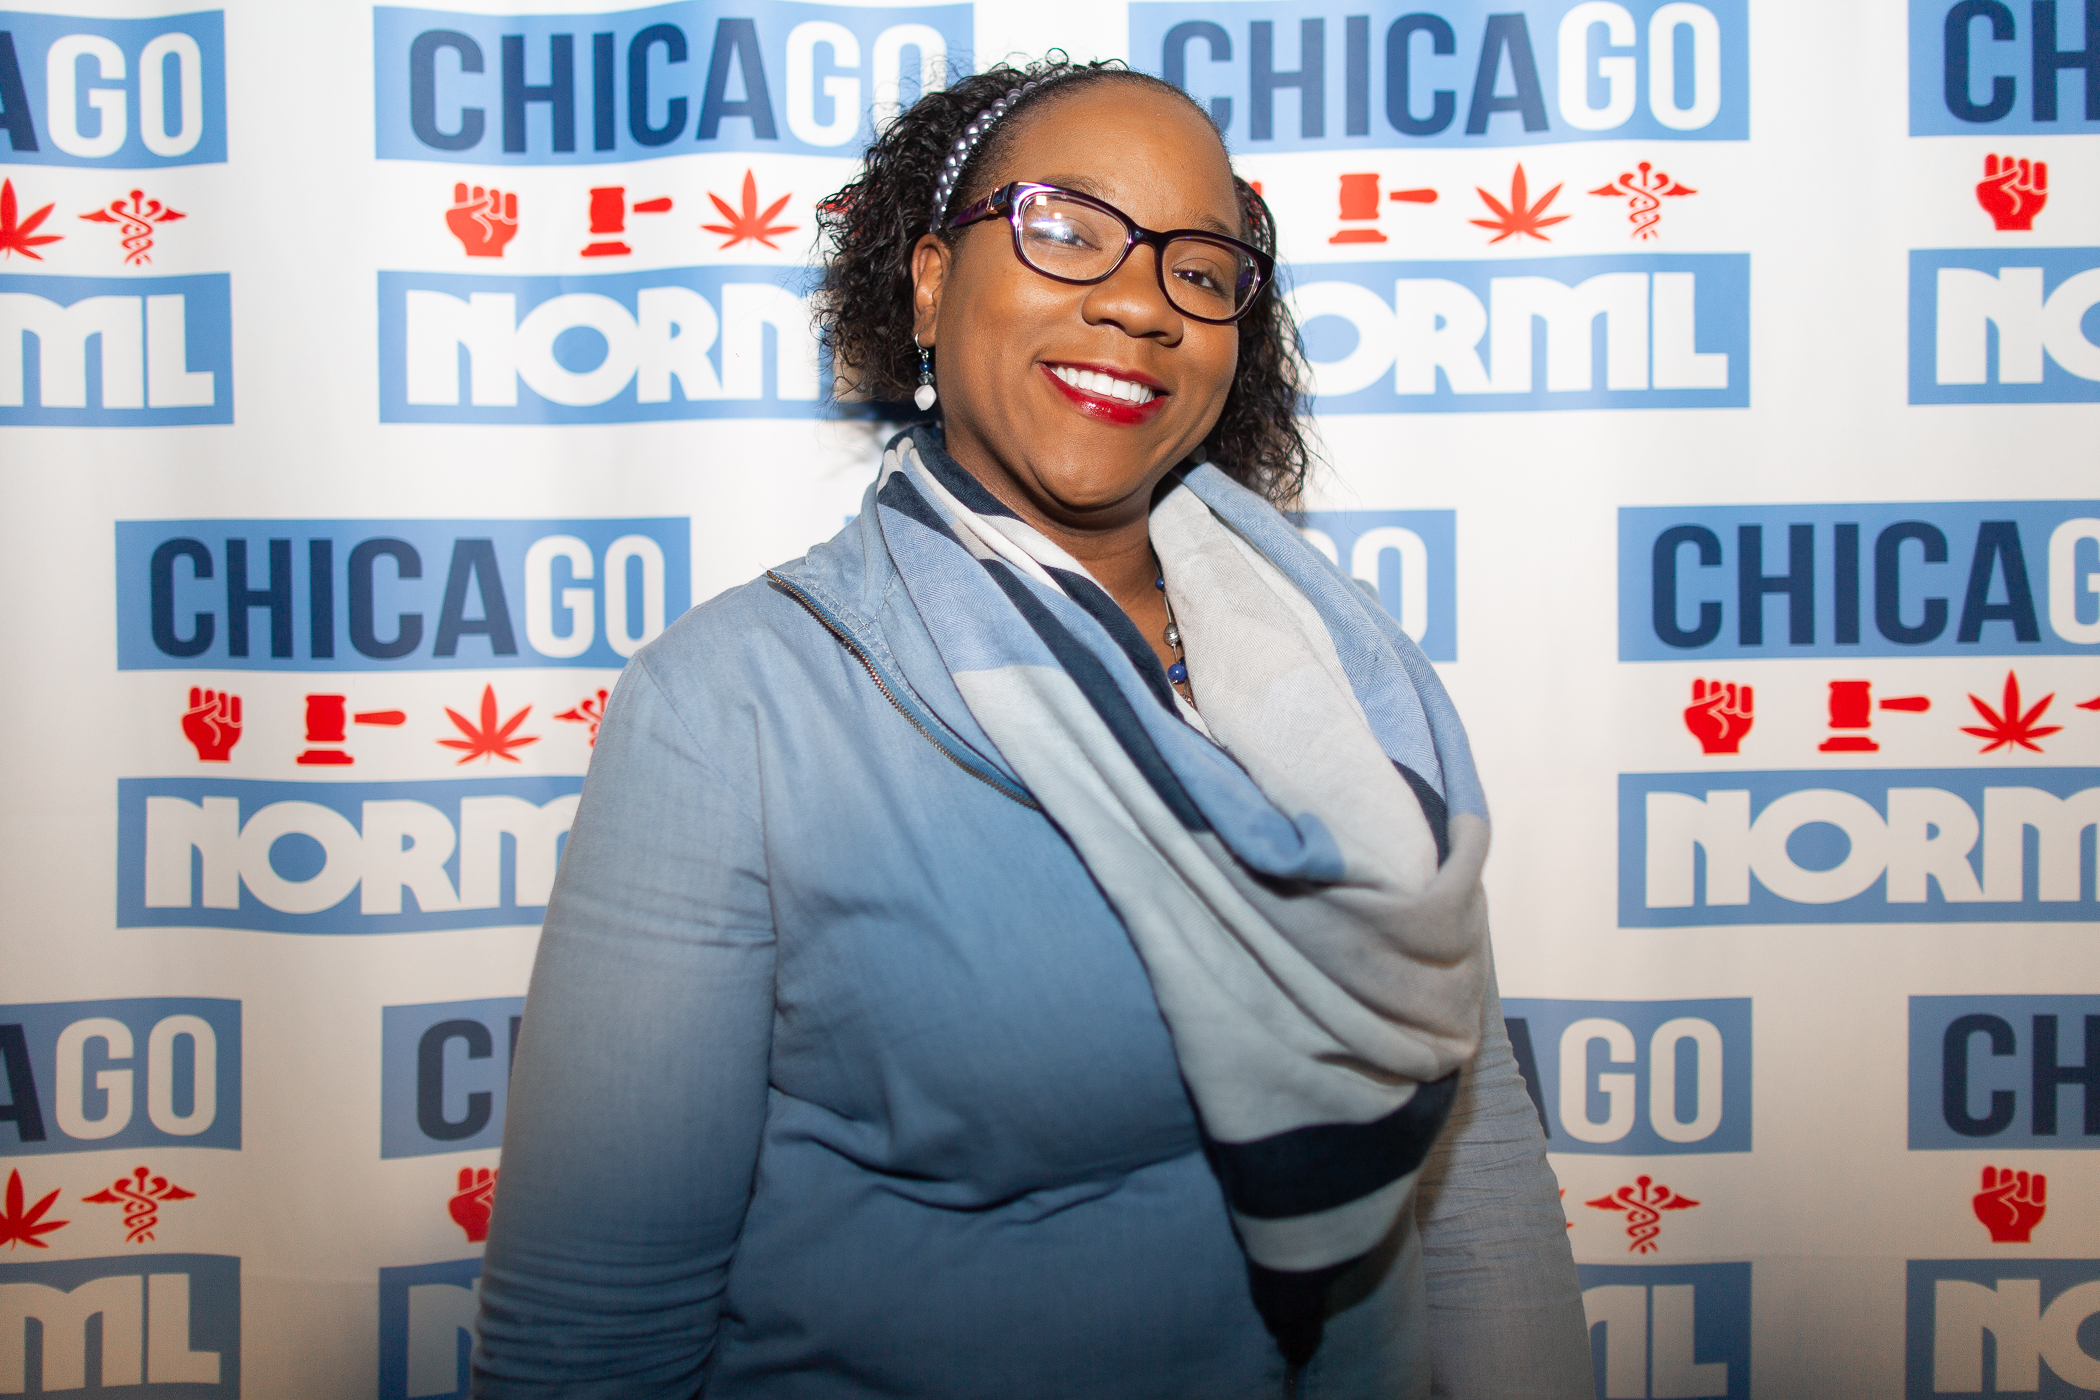 Copy of 20180420 - Chicago Norml-12.jpg